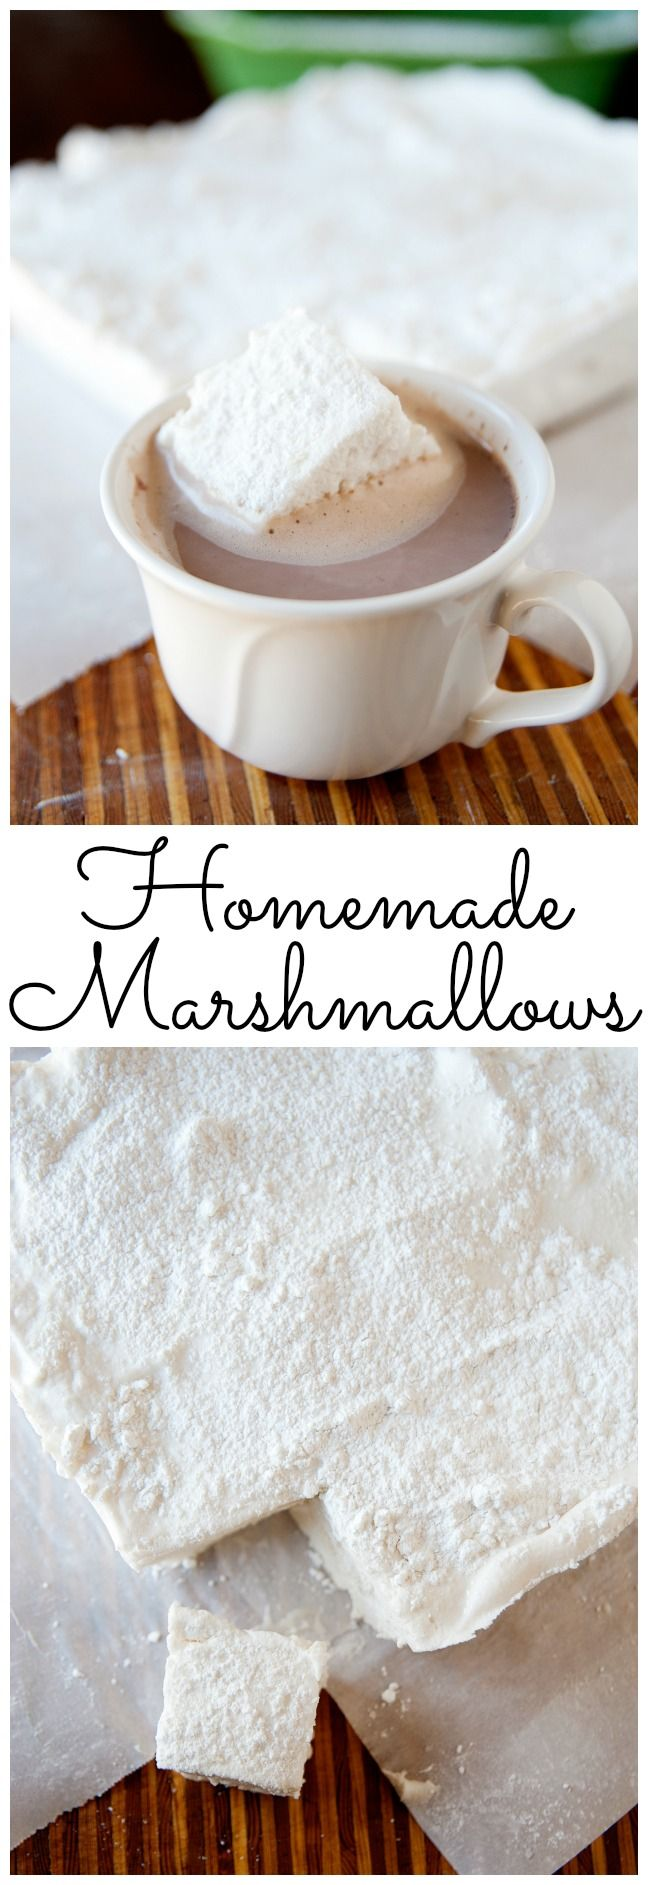 Homemade Paleo Marshmallows Recipe